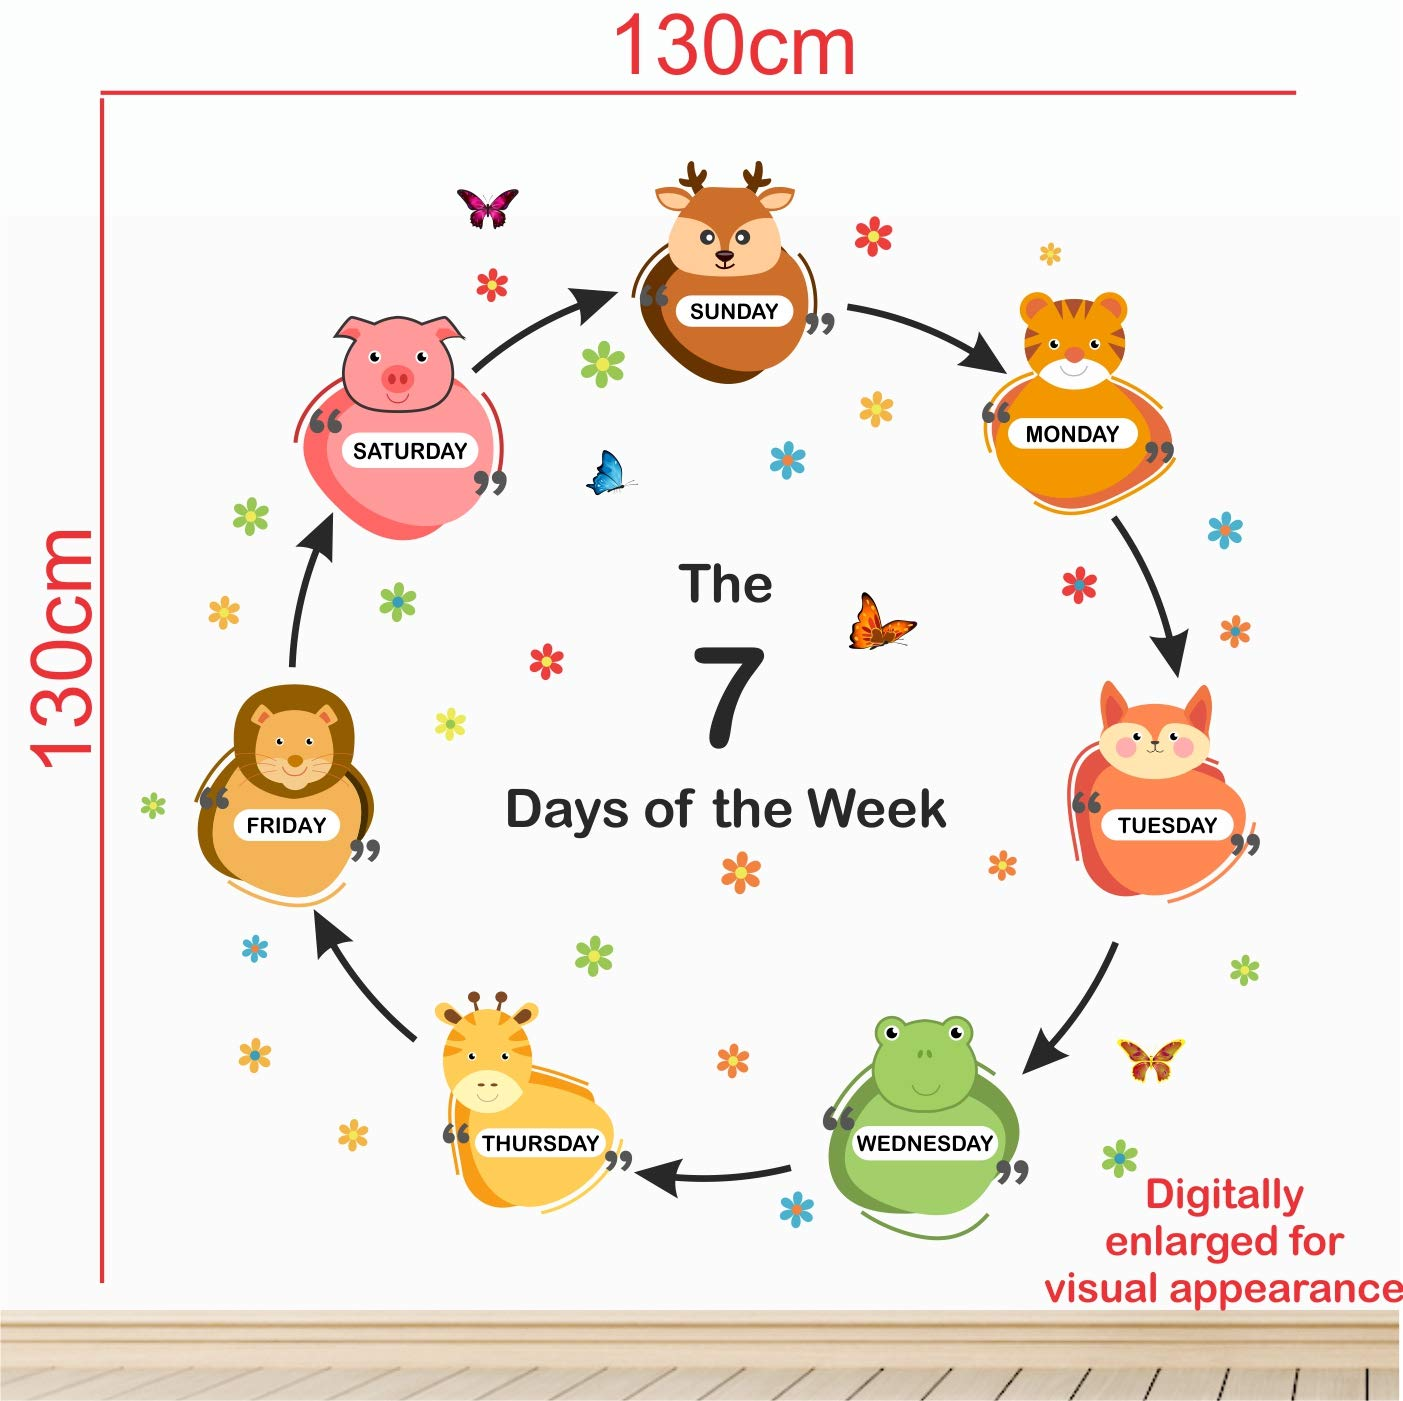 7 days of the week